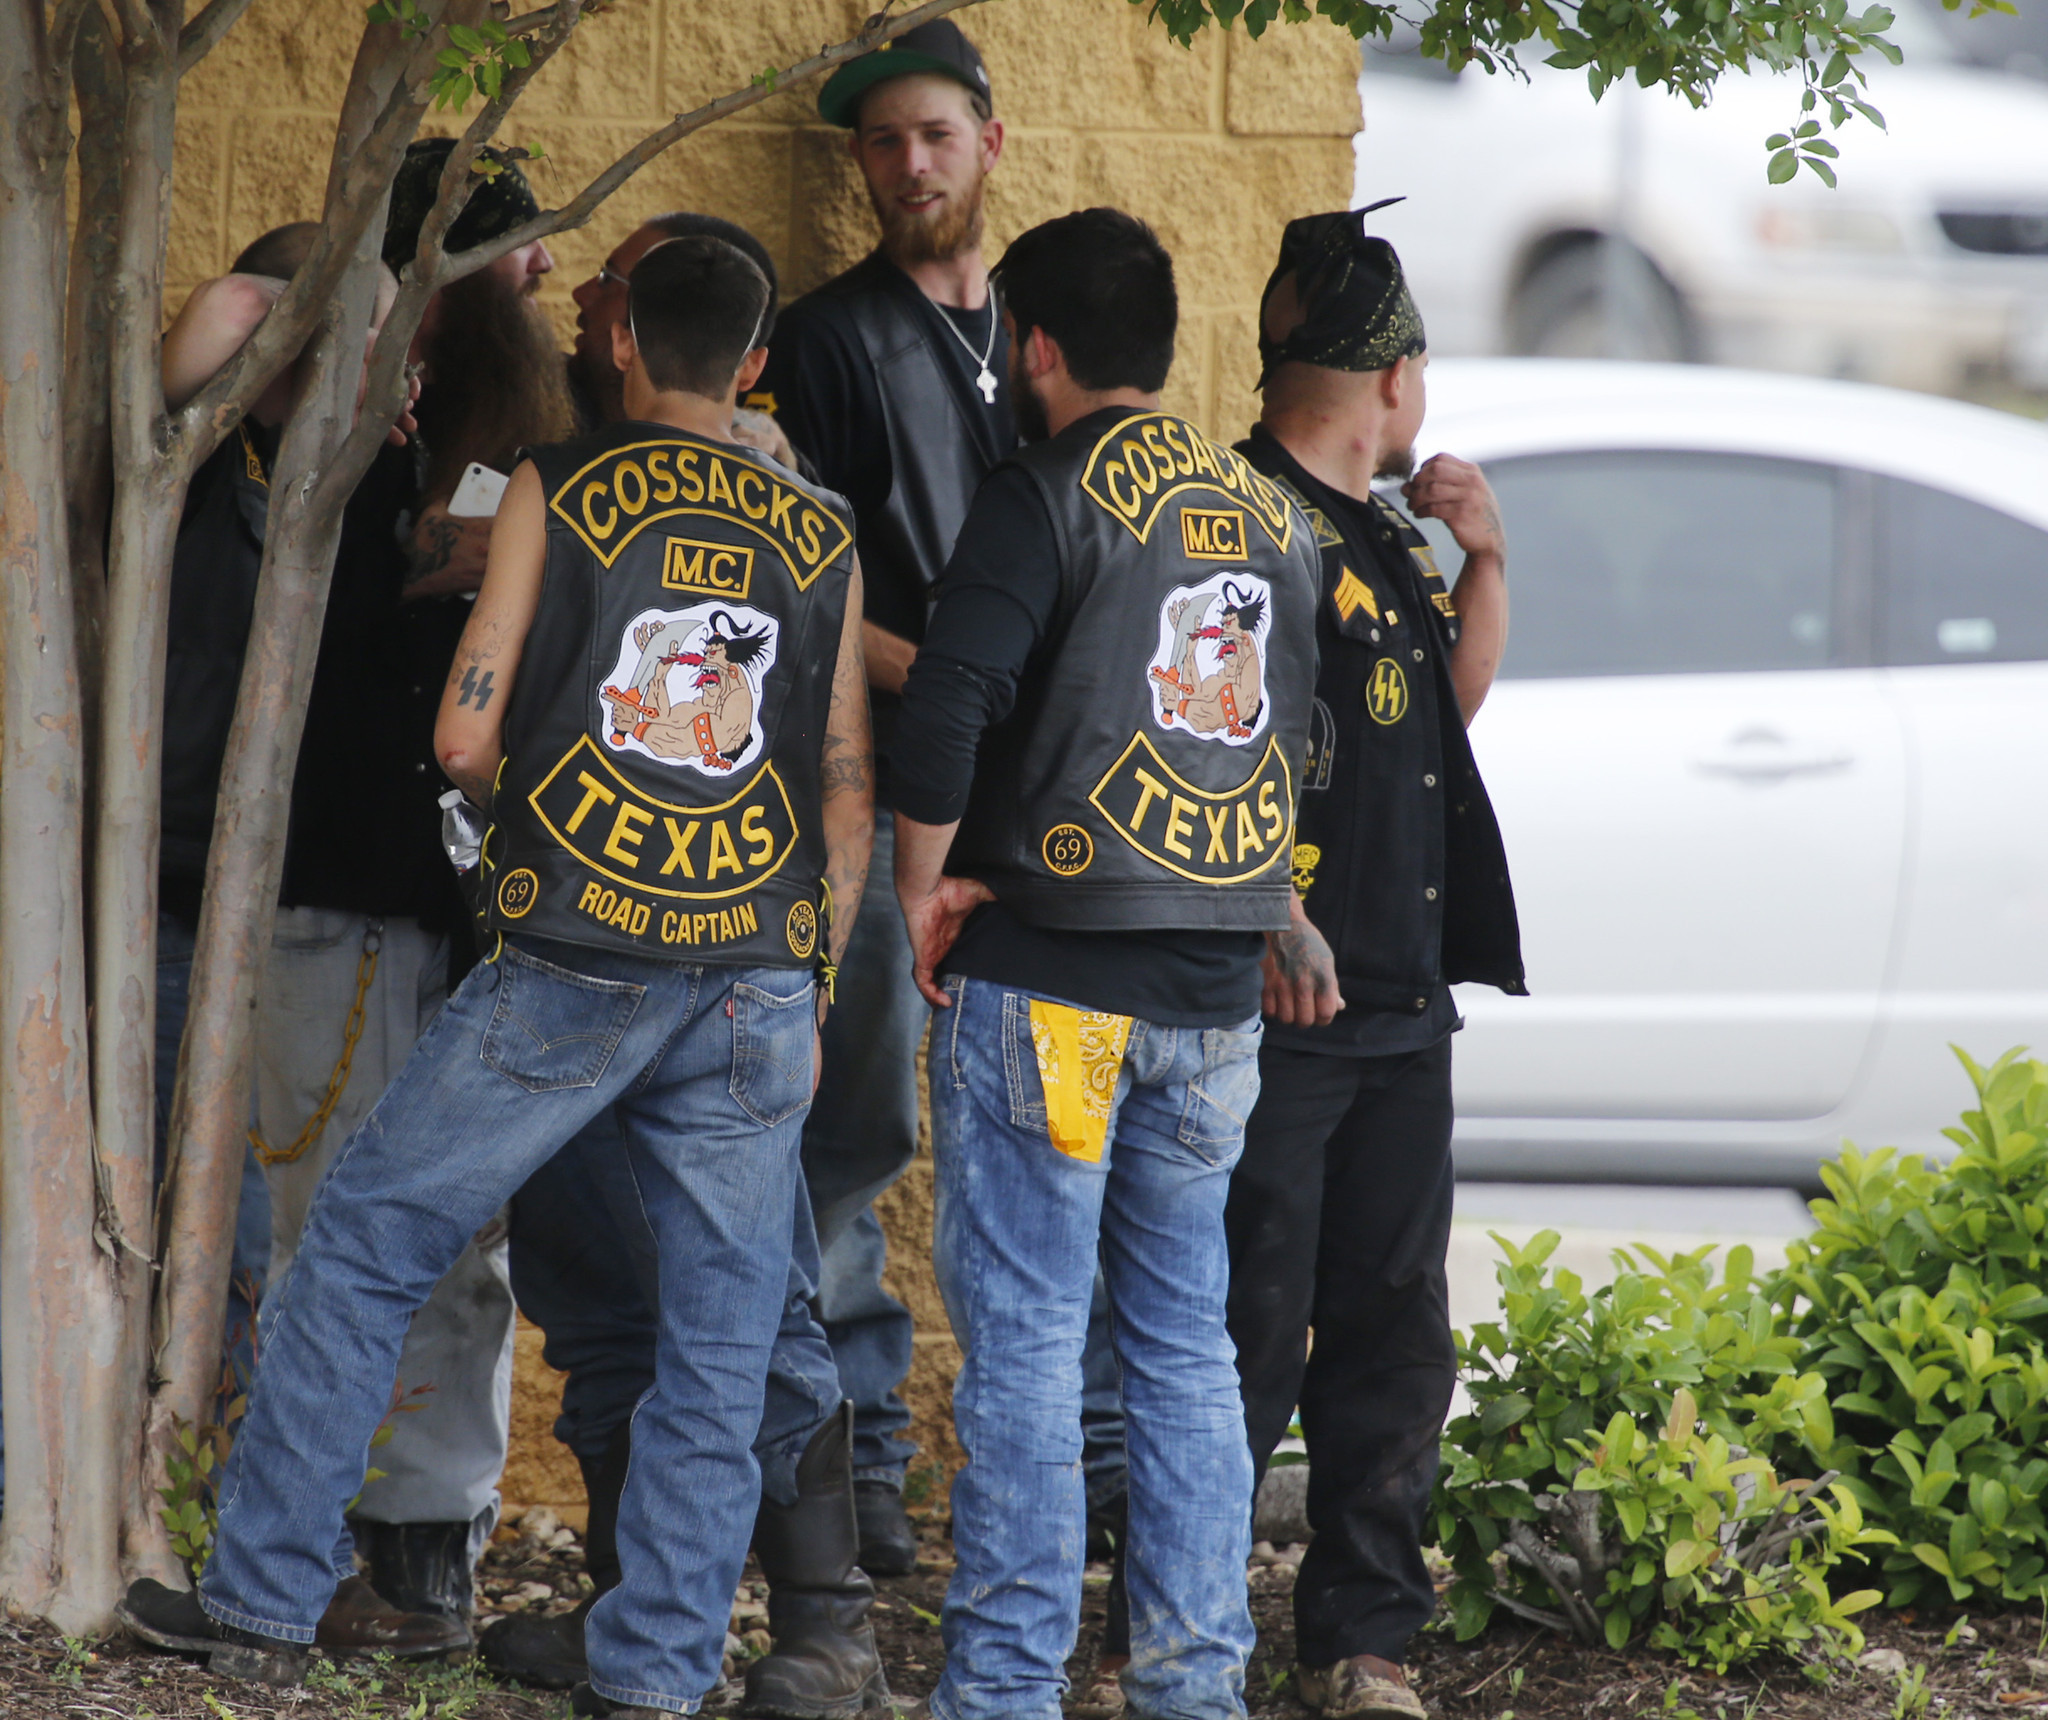 192 arrested after Waco biker gang shooting leaves 9 dead, 18 wounded